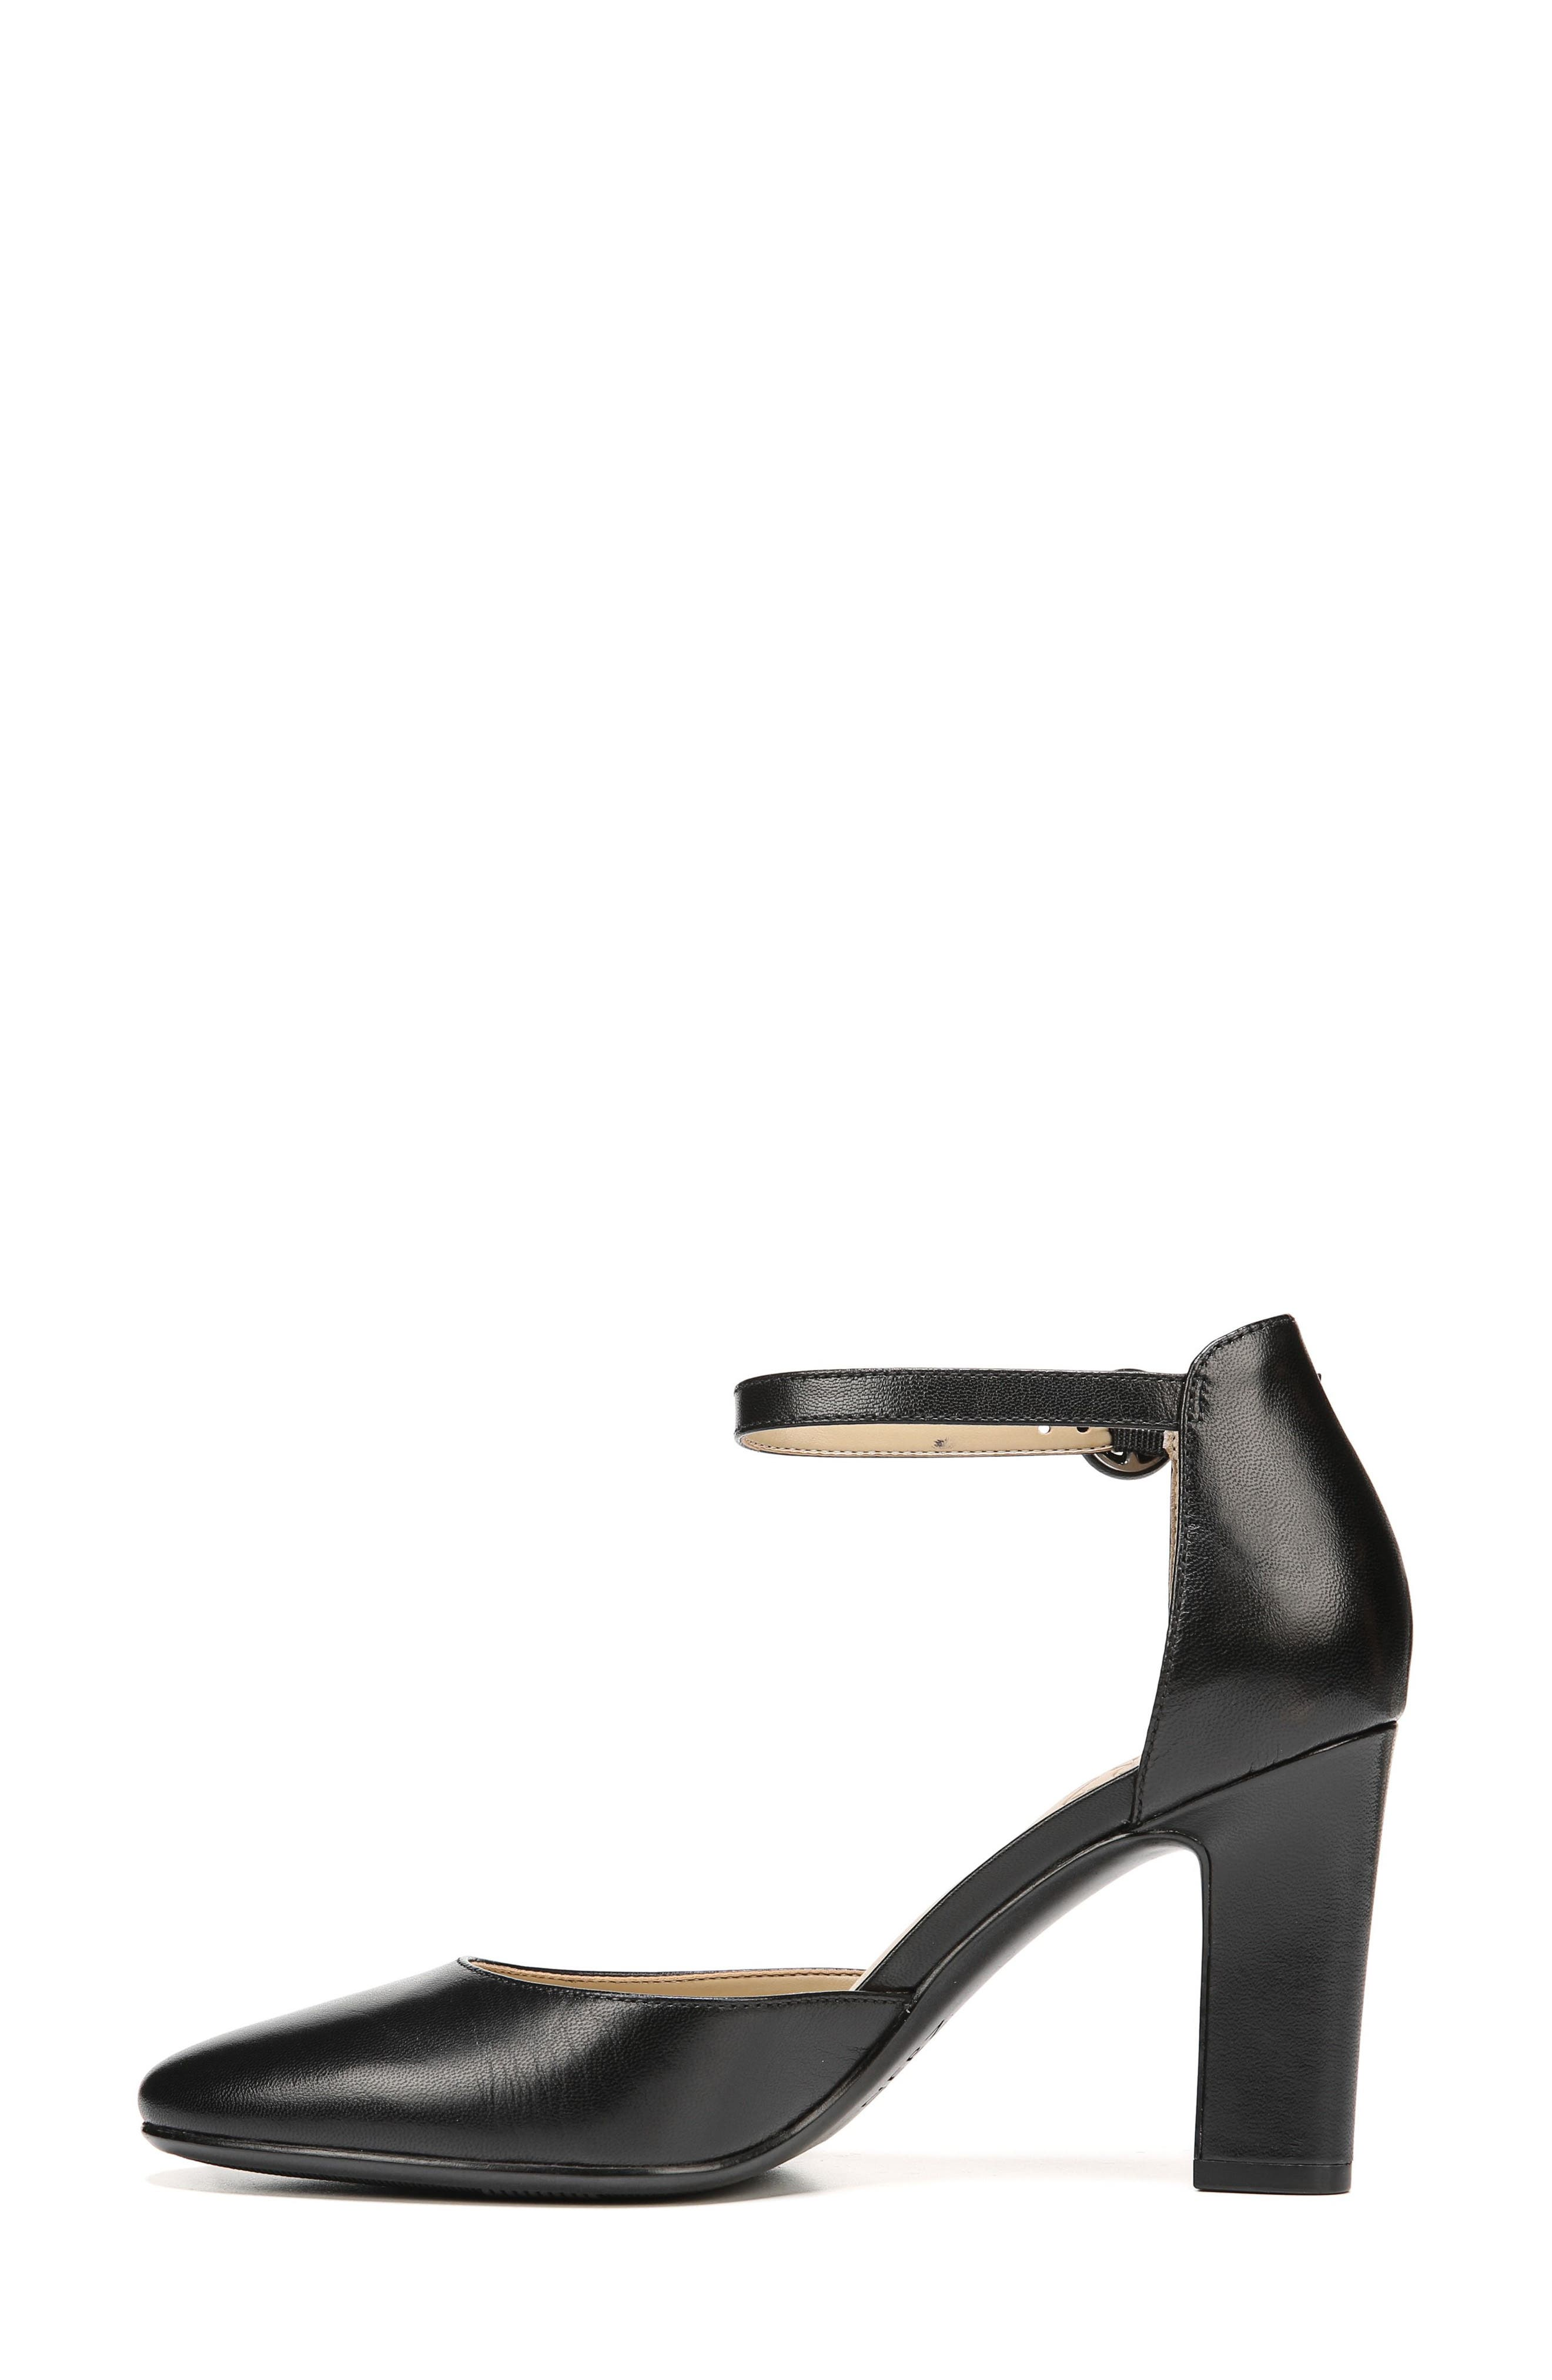 Gianna Ankle Strap Pump,                             Alternate thumbnail 3, color,                             BLACK LEATHER